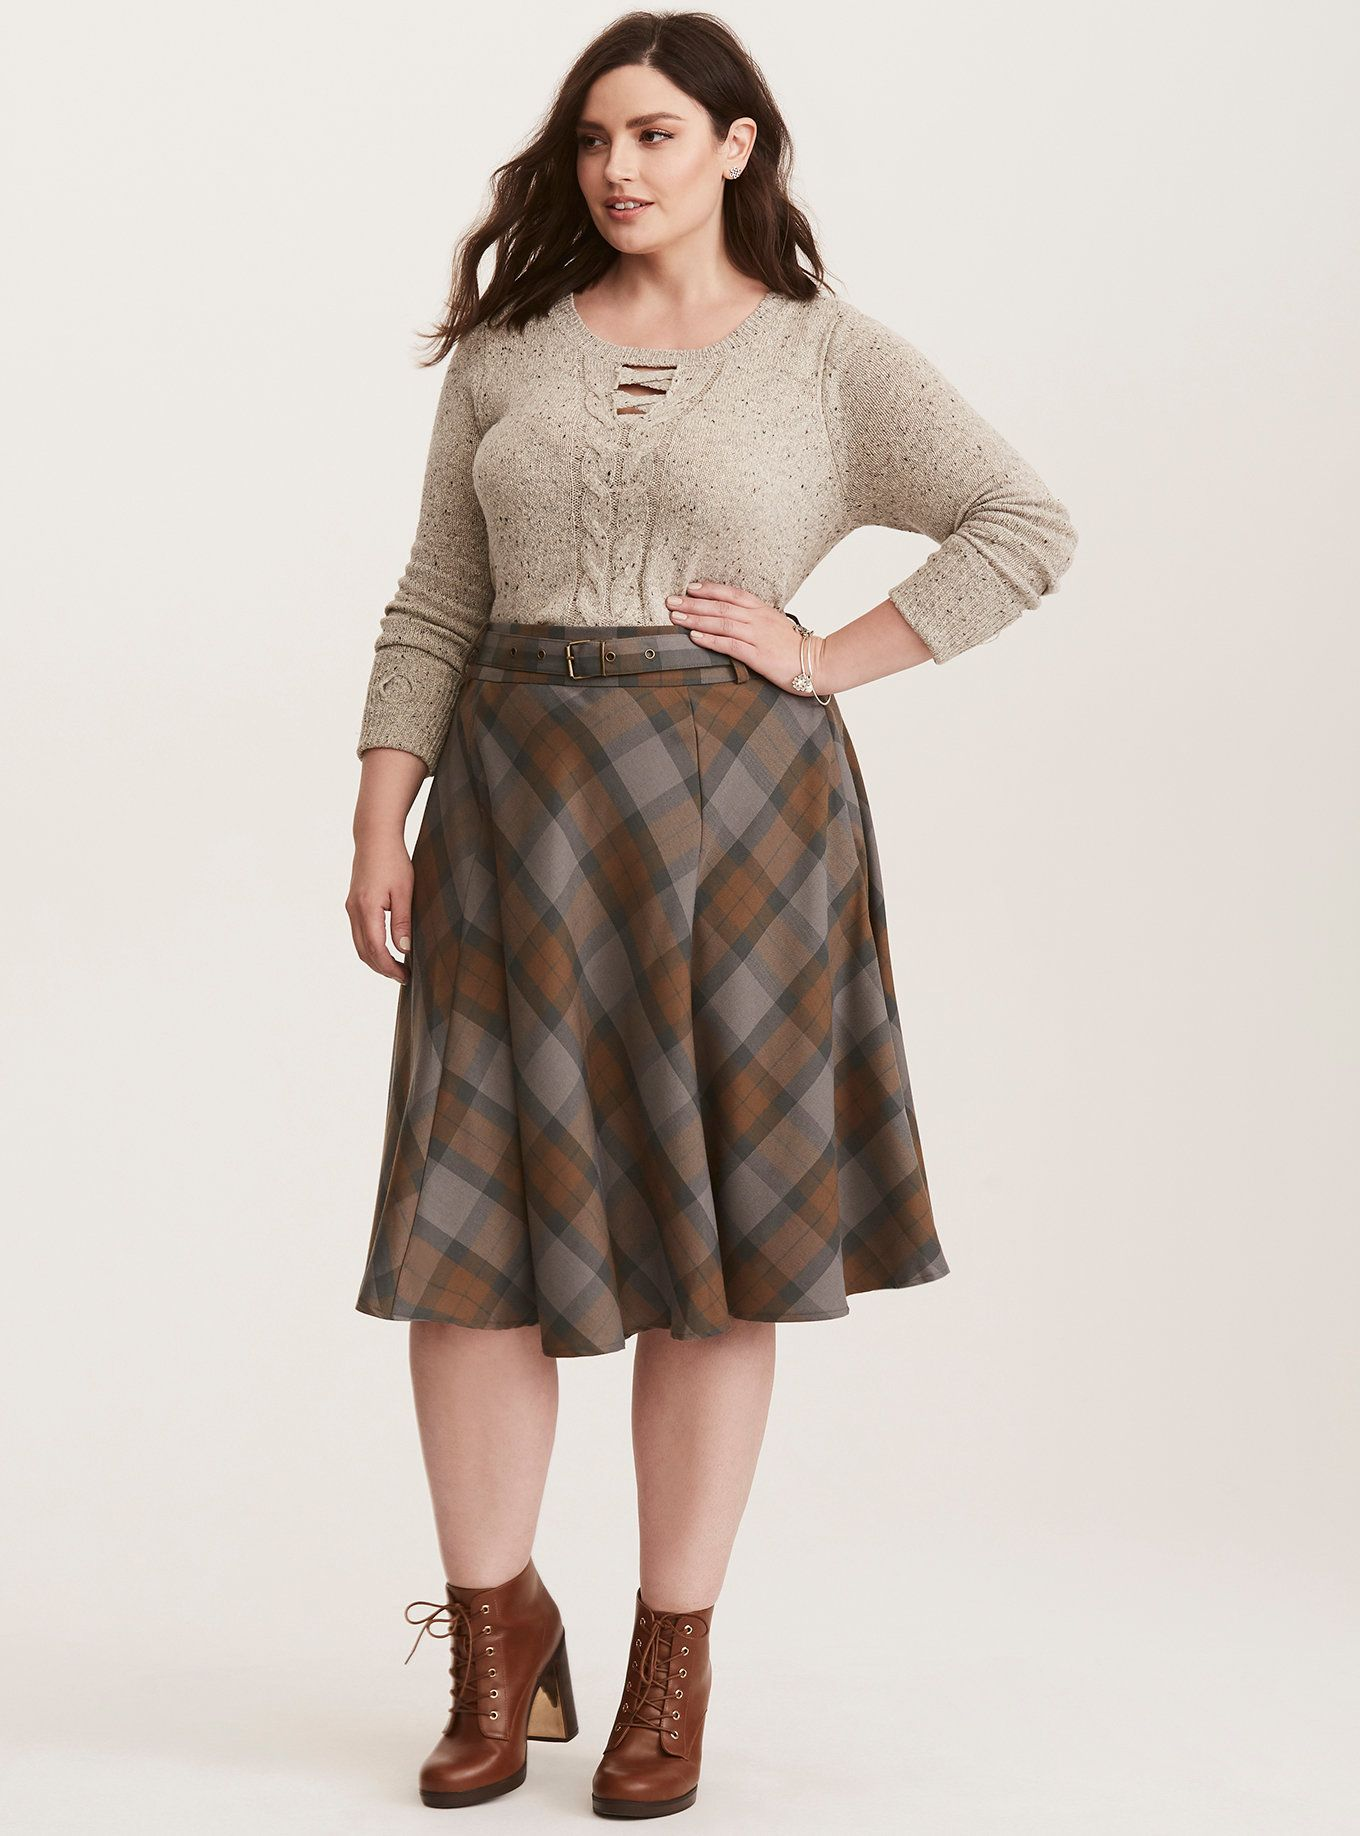 9f072b3a476f02 Torrid Outlander collection Dressy Outfits, Skirt Outfits, Tartan Dress,  Plaid Skirts, Swing